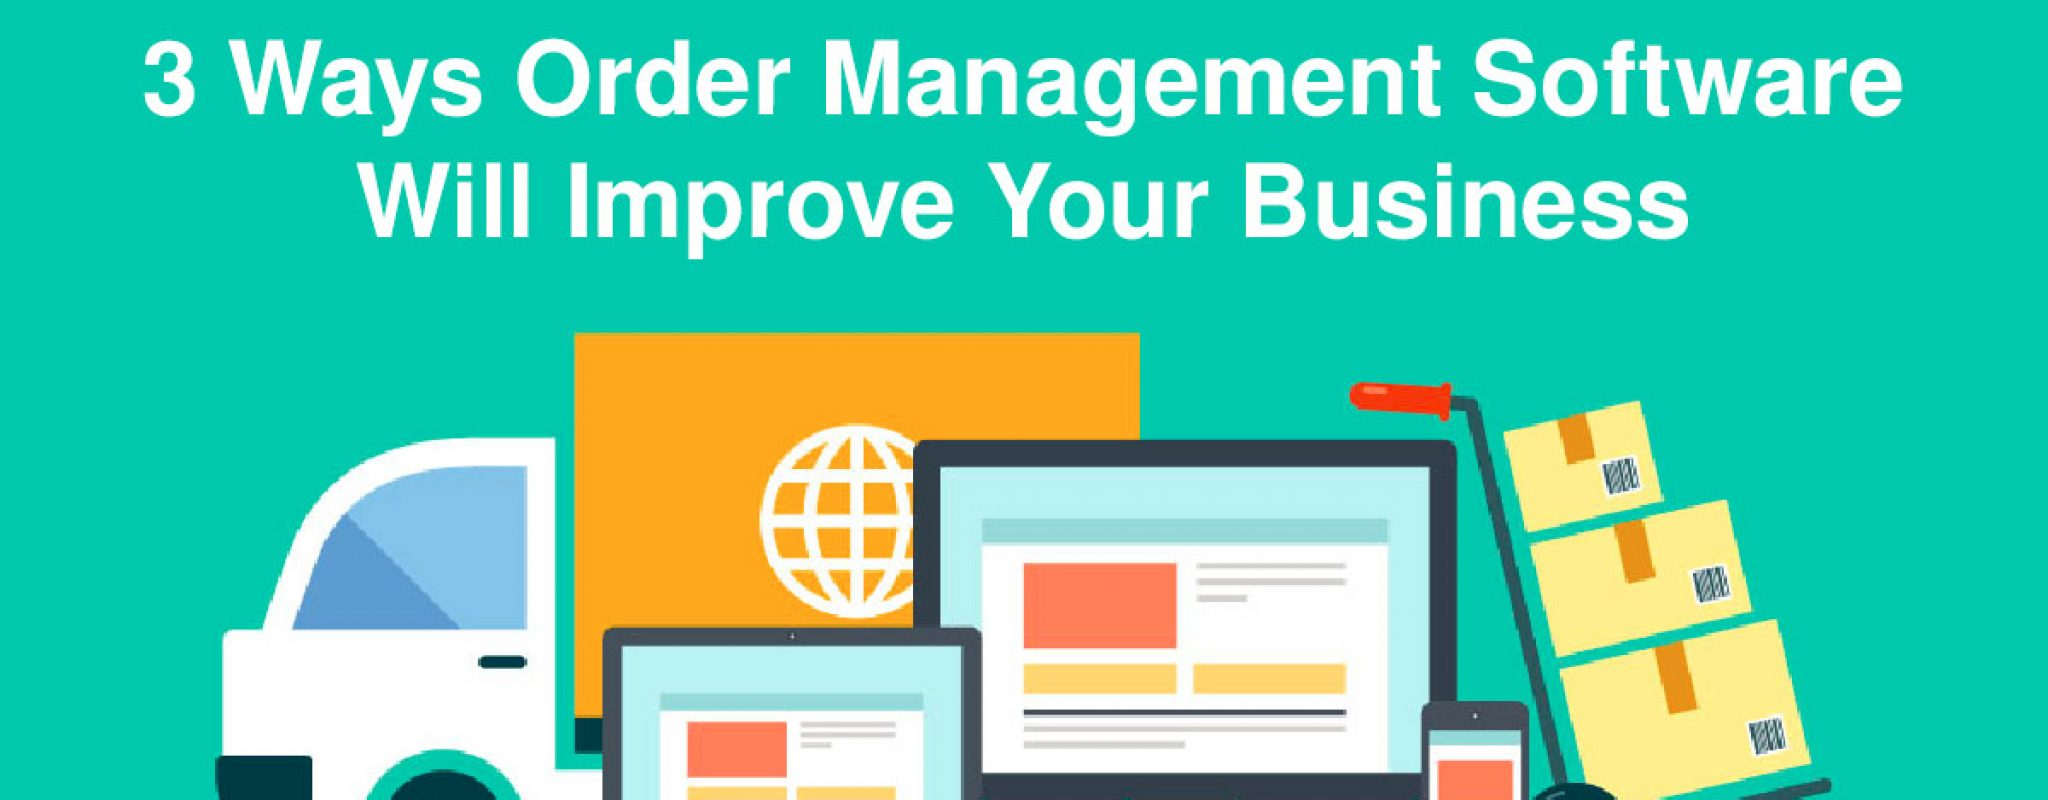 3 Ways Order Management Software will Improve your Business